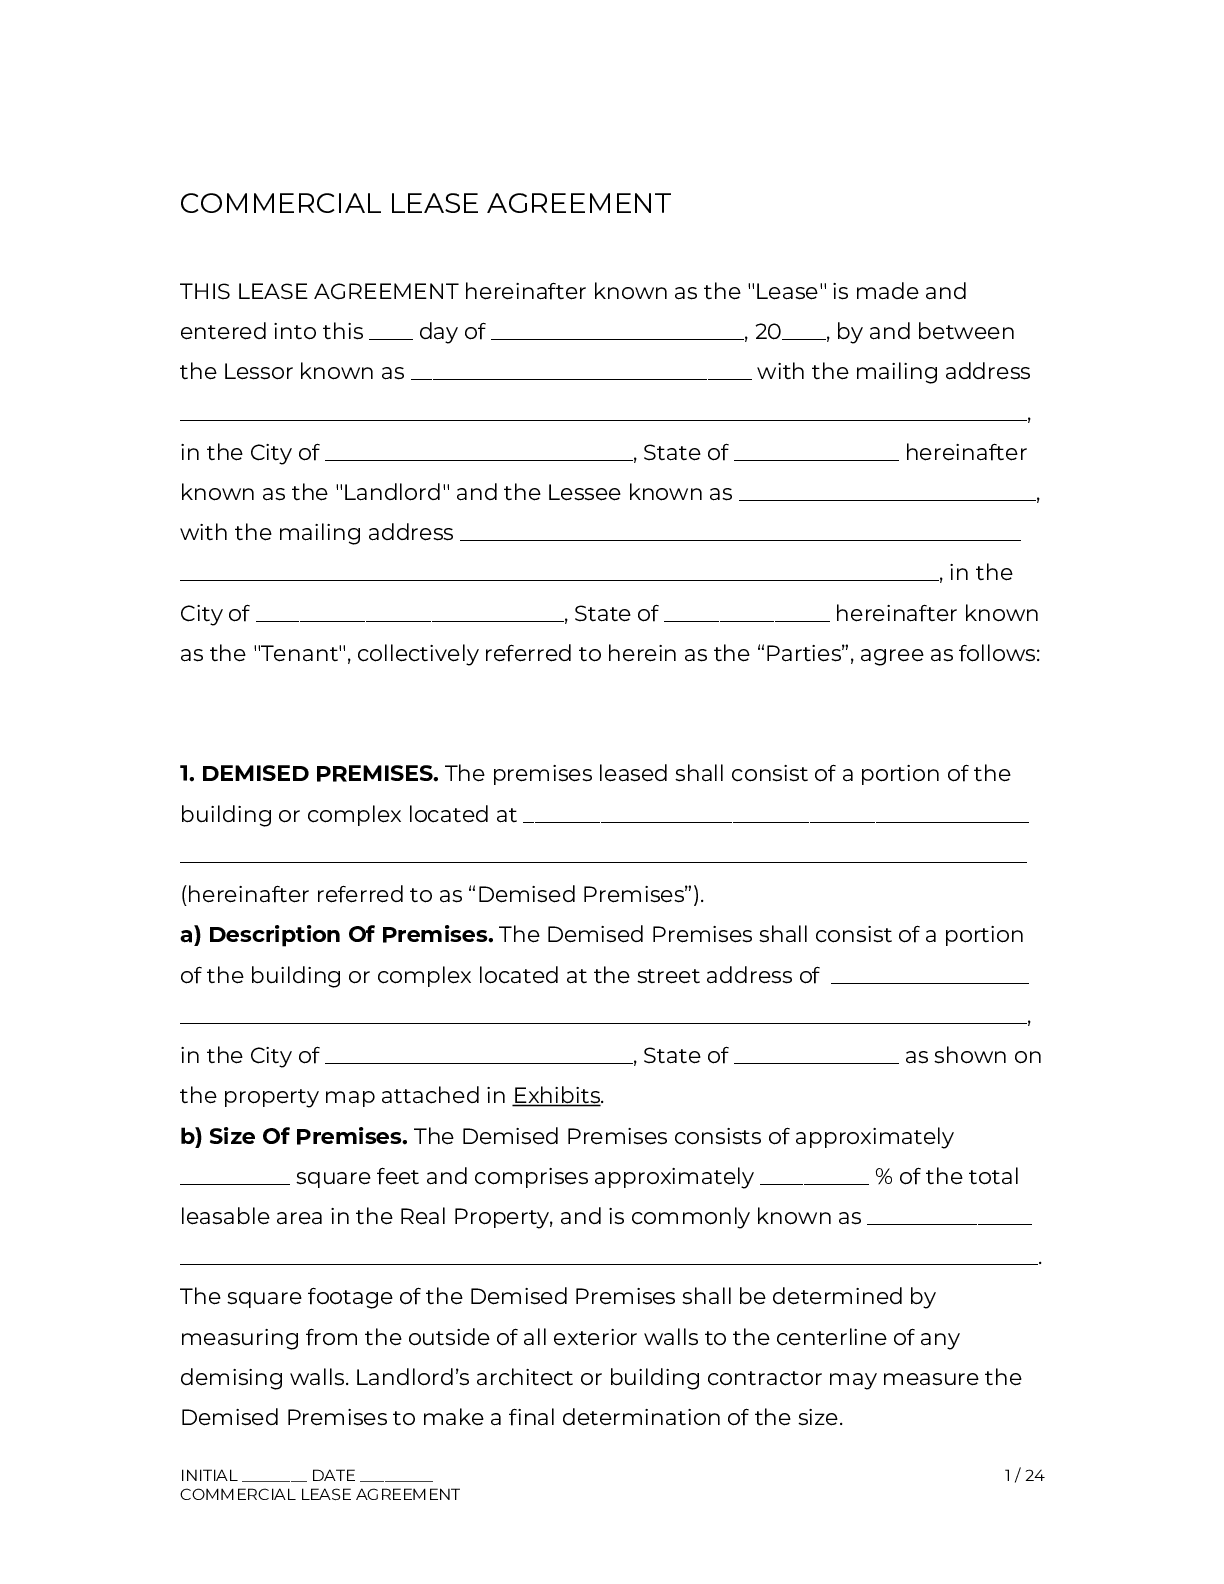 An office lease agreement is a formal contract between a landlord and an occupant who will be renting for purposes other than retail. Commercial Lease Agreement Template 2021 Official Pdf